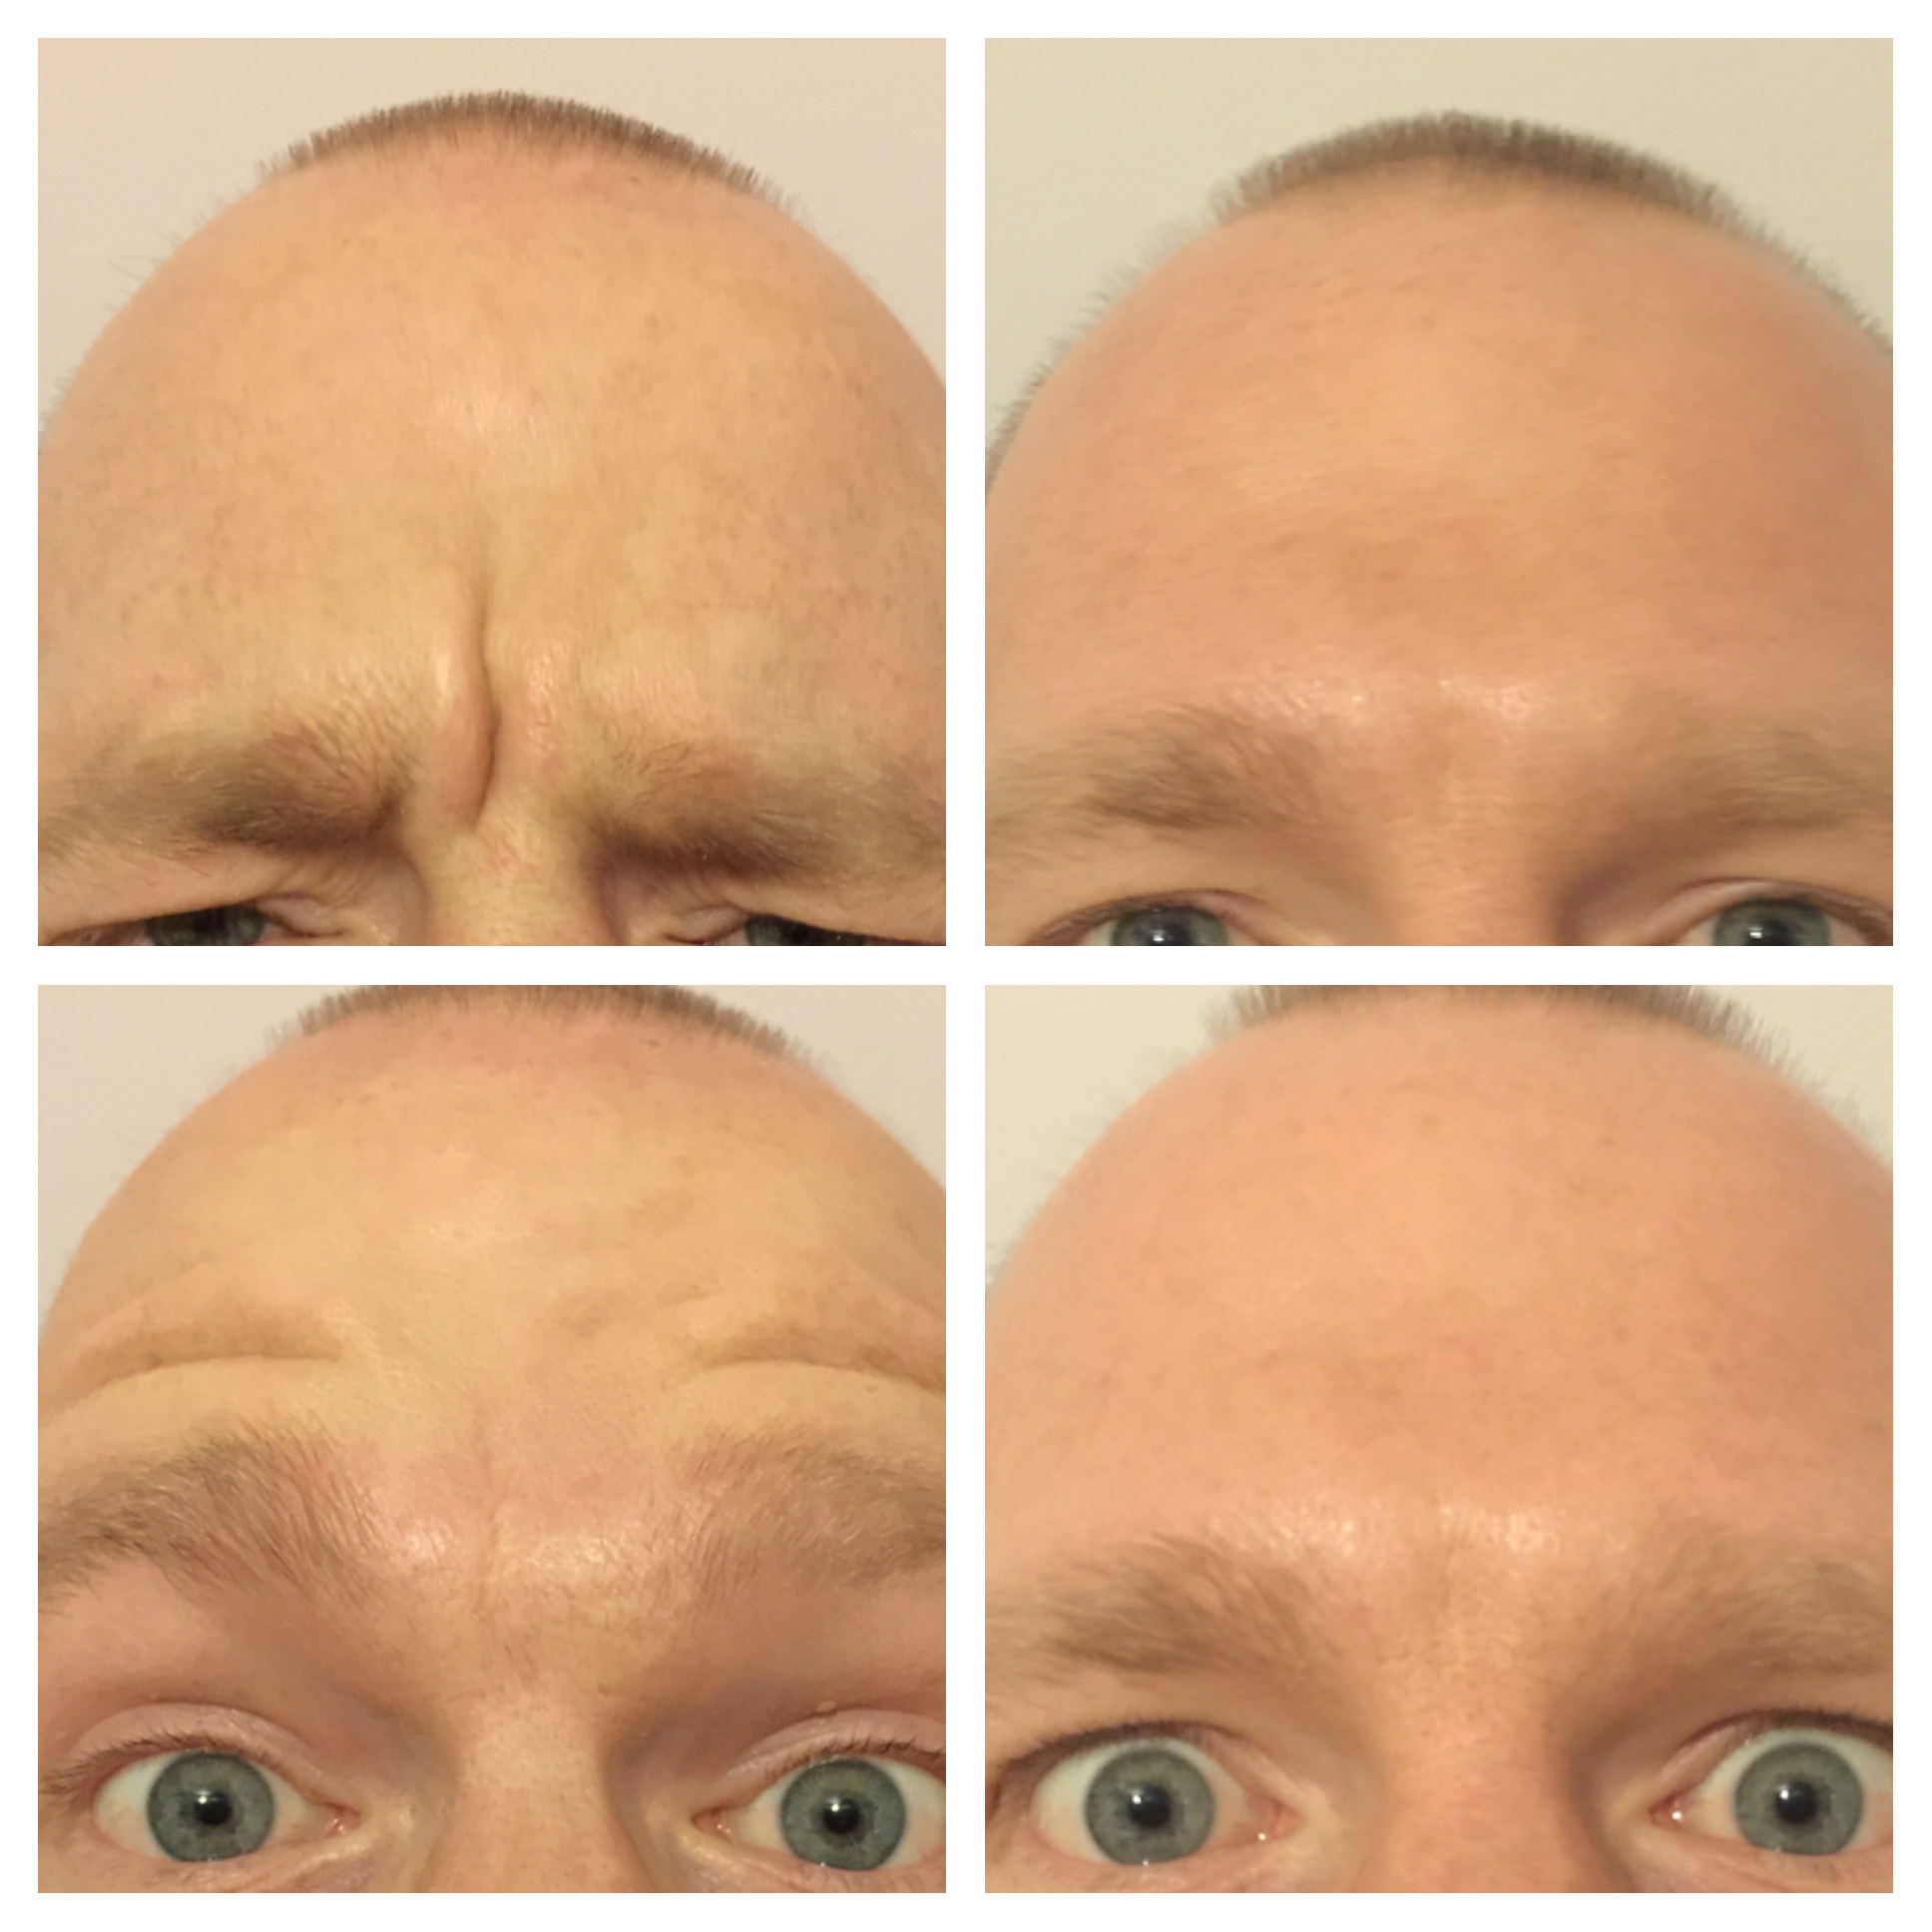 Mens Frown Line Treatment